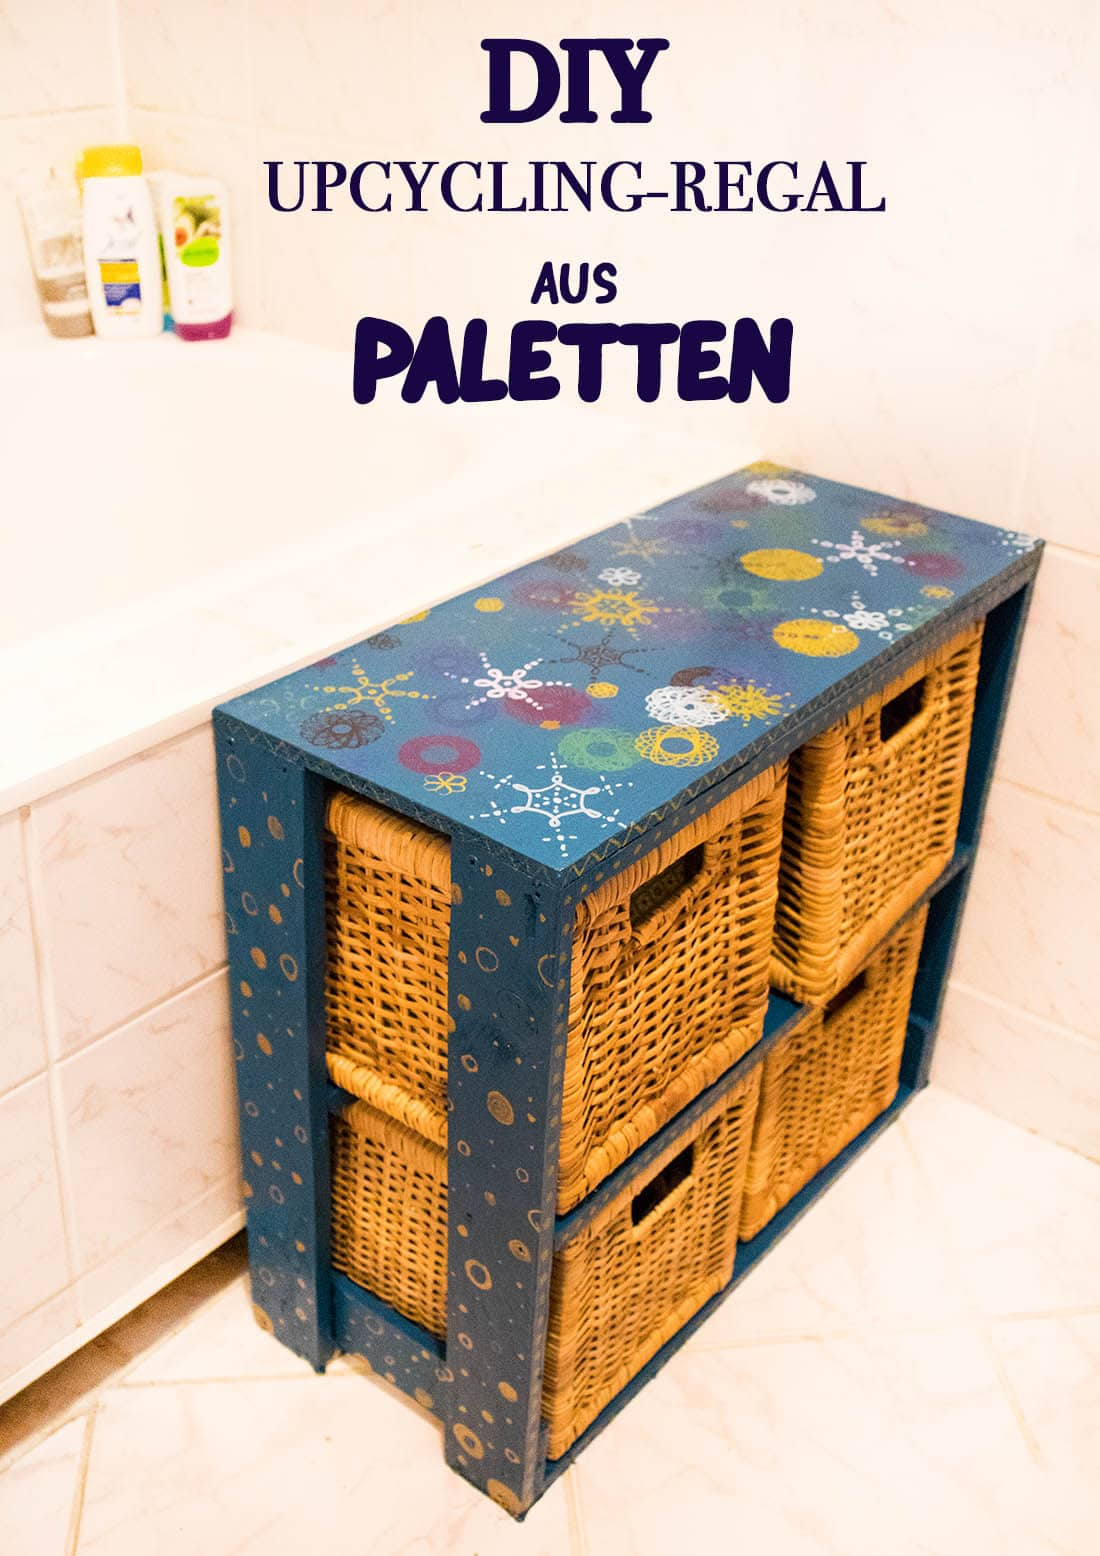 Regal Palette Upcycling Regal Aus Paletten Bauen Do It Yourself Diy